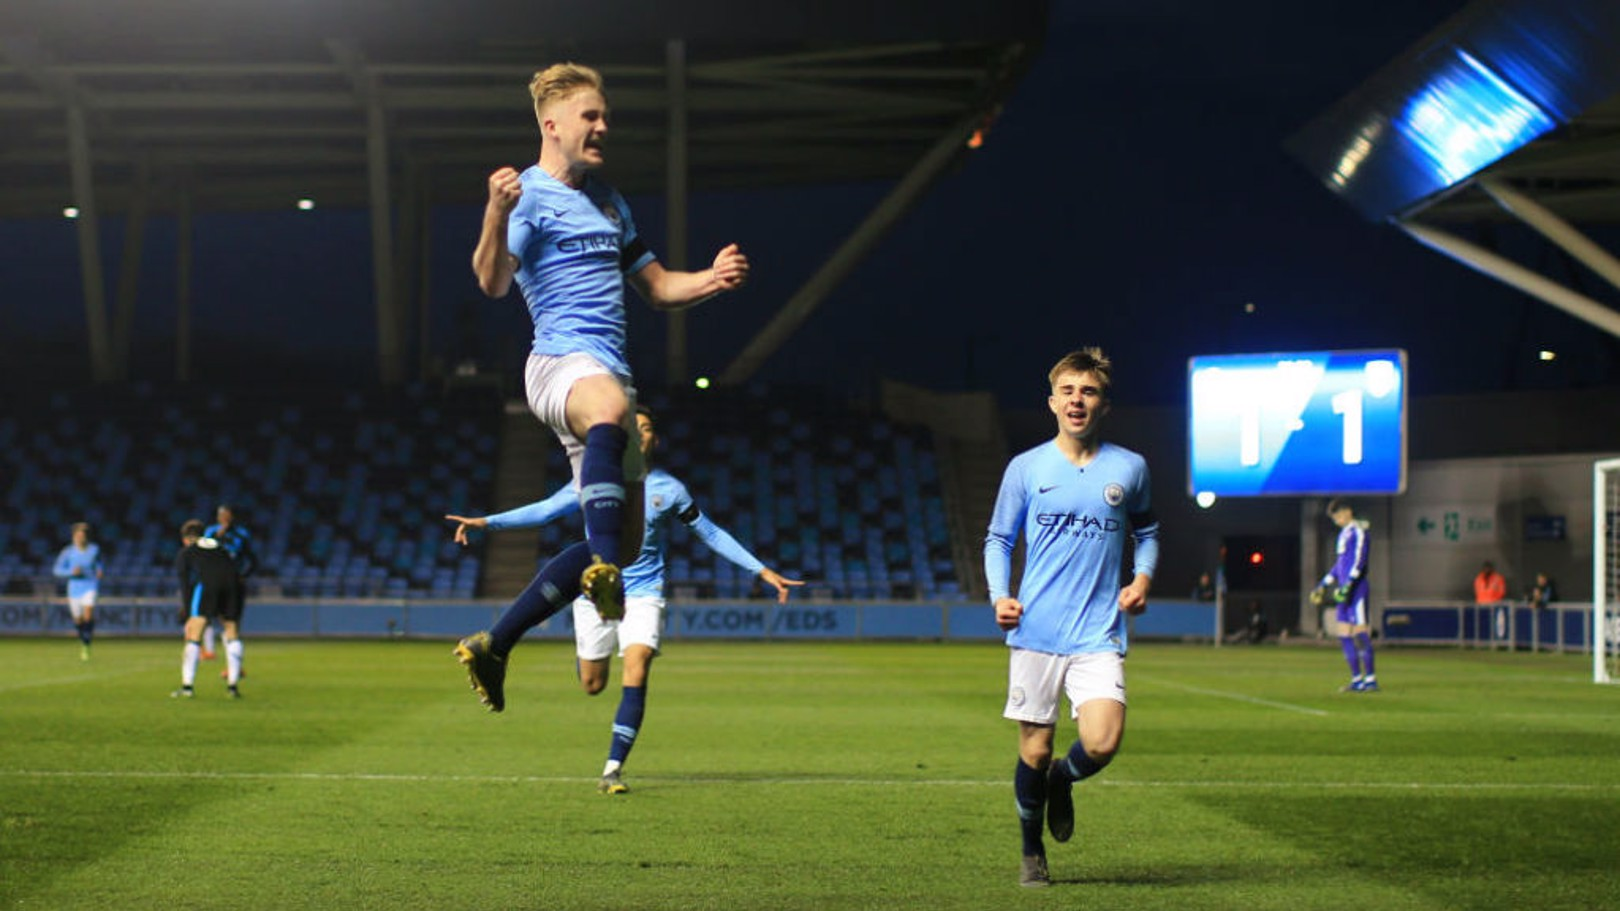 Tickets on sale now for FA Youth Cup final